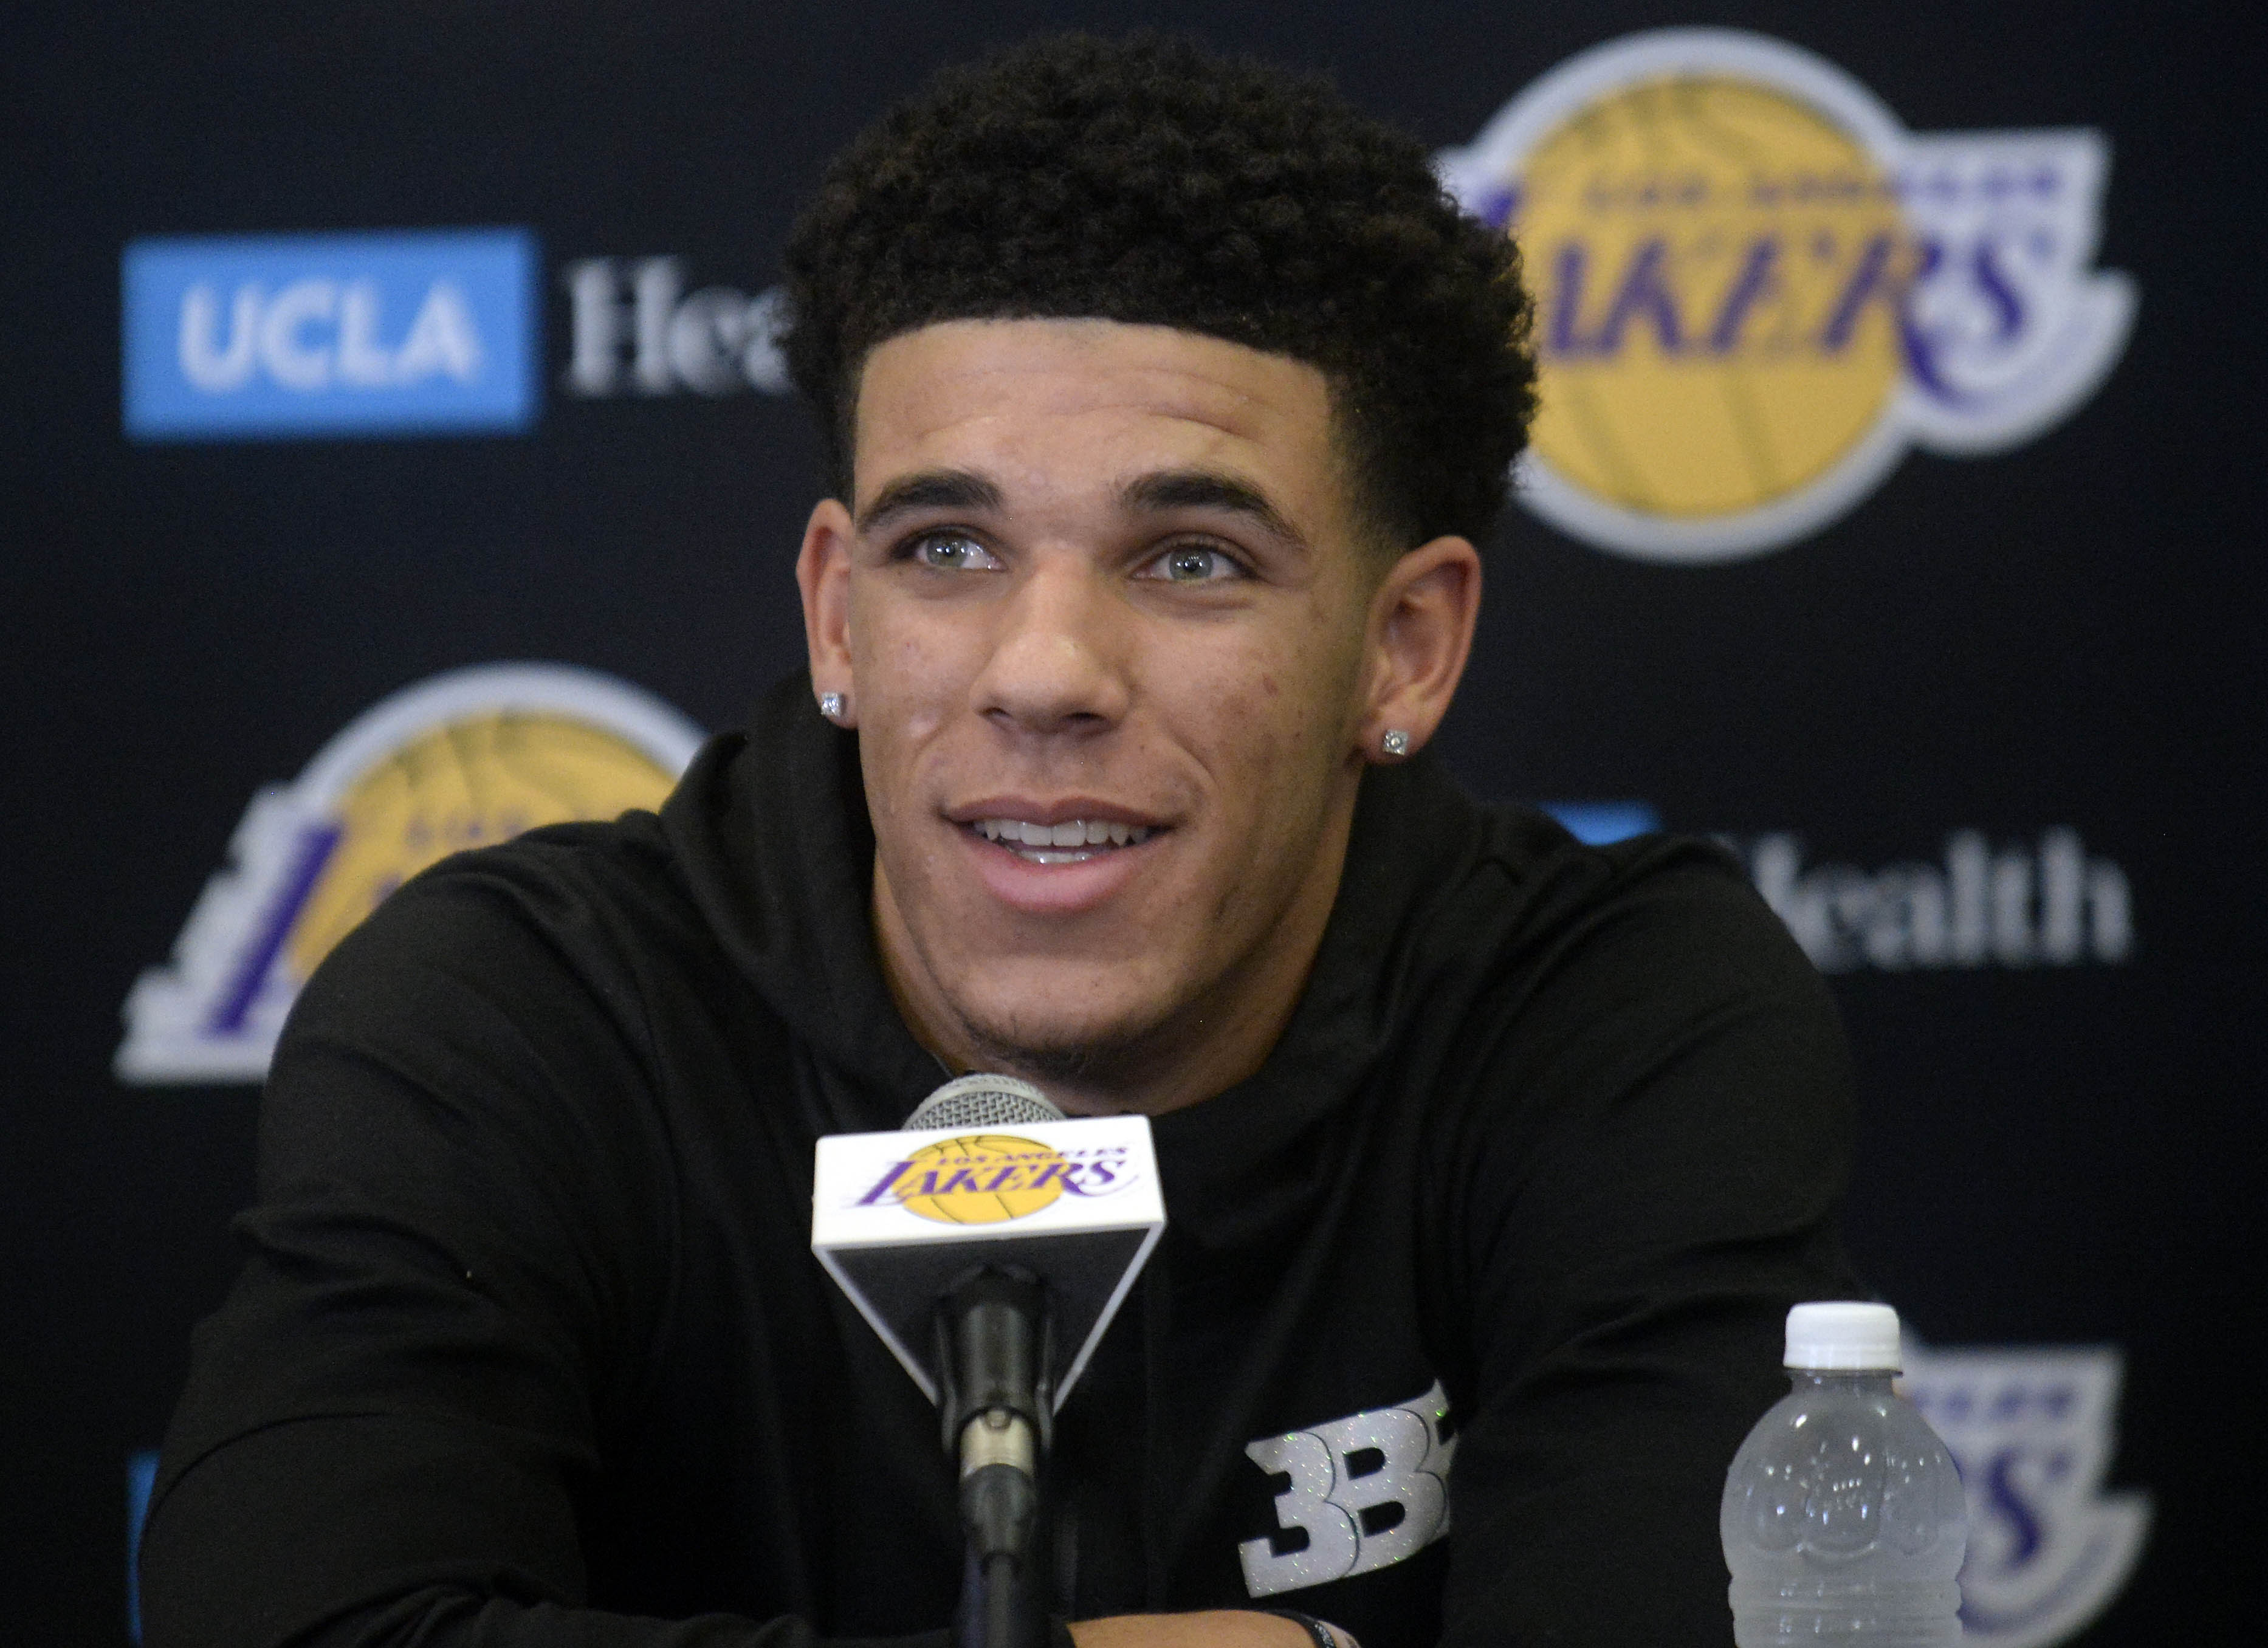 10127262-nba-los-angeles-lakers-press-conference-1